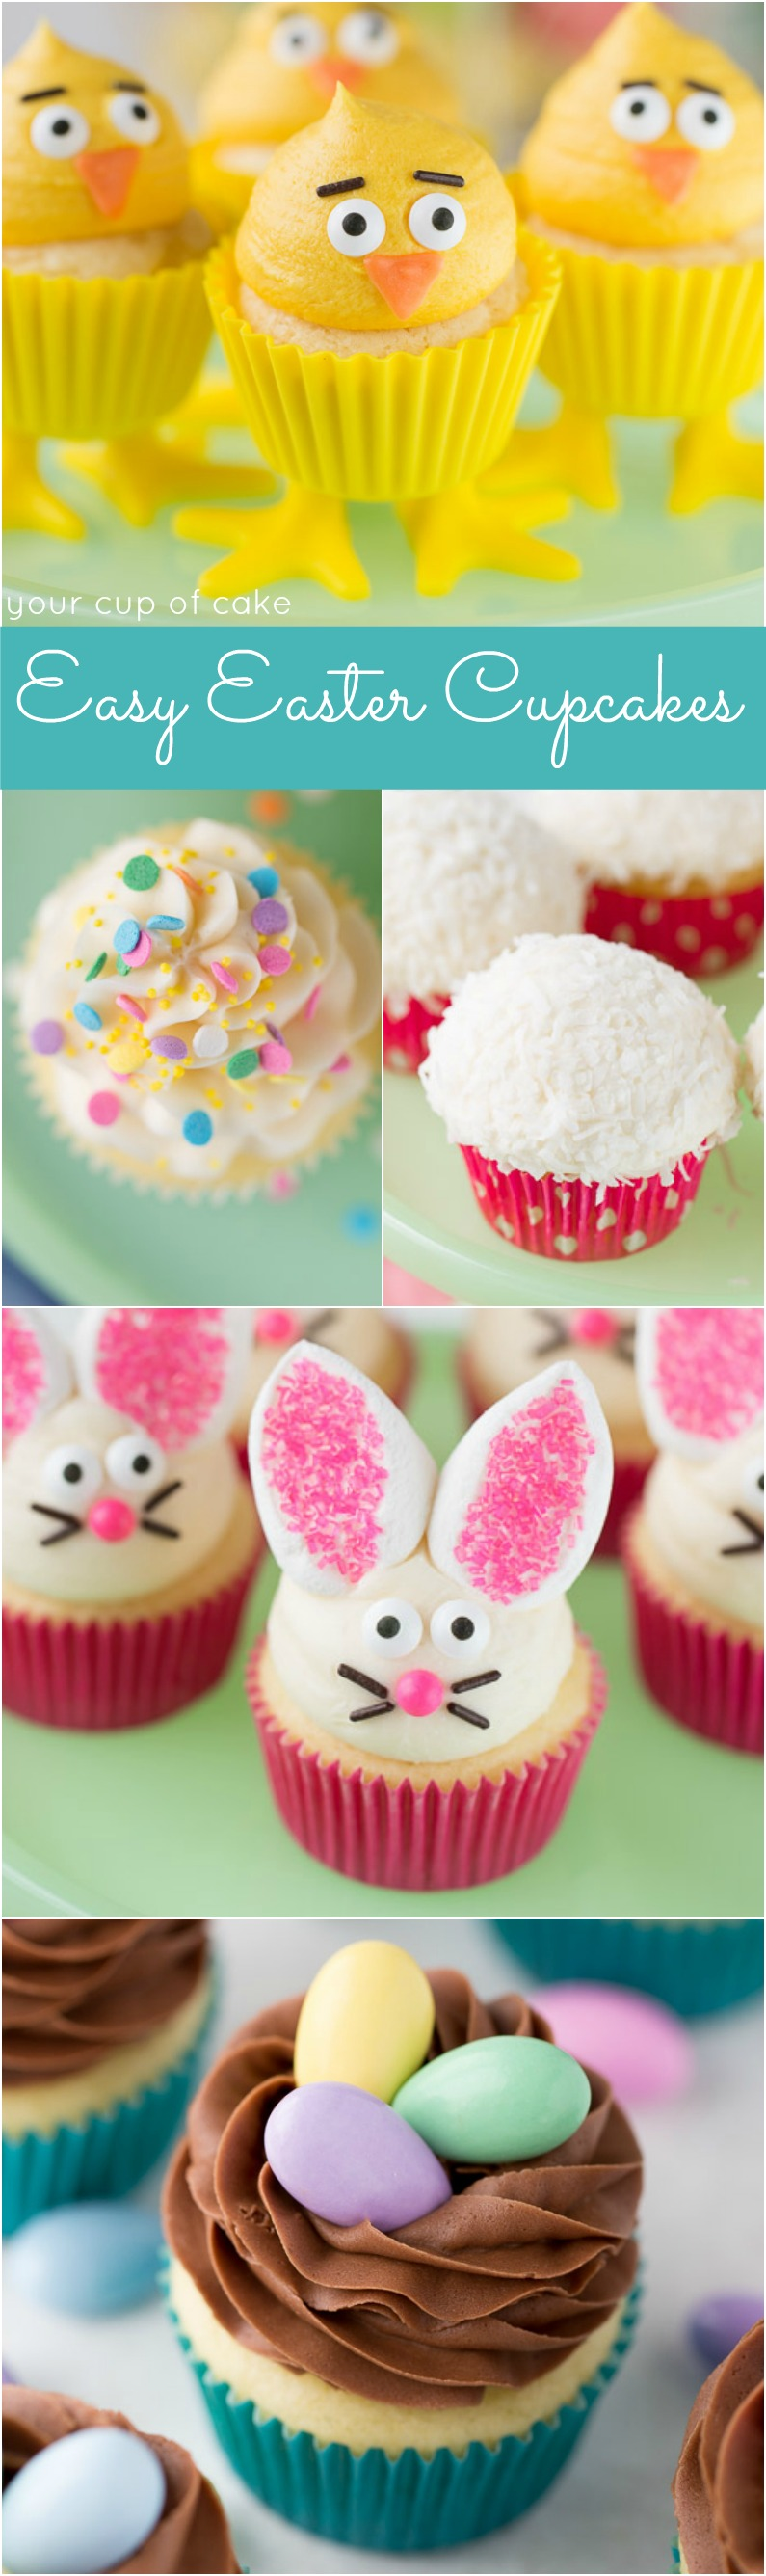 Easy Easter Cupcake Decorating Ideas!  The Marshmallow Bunny Ears are so cute!